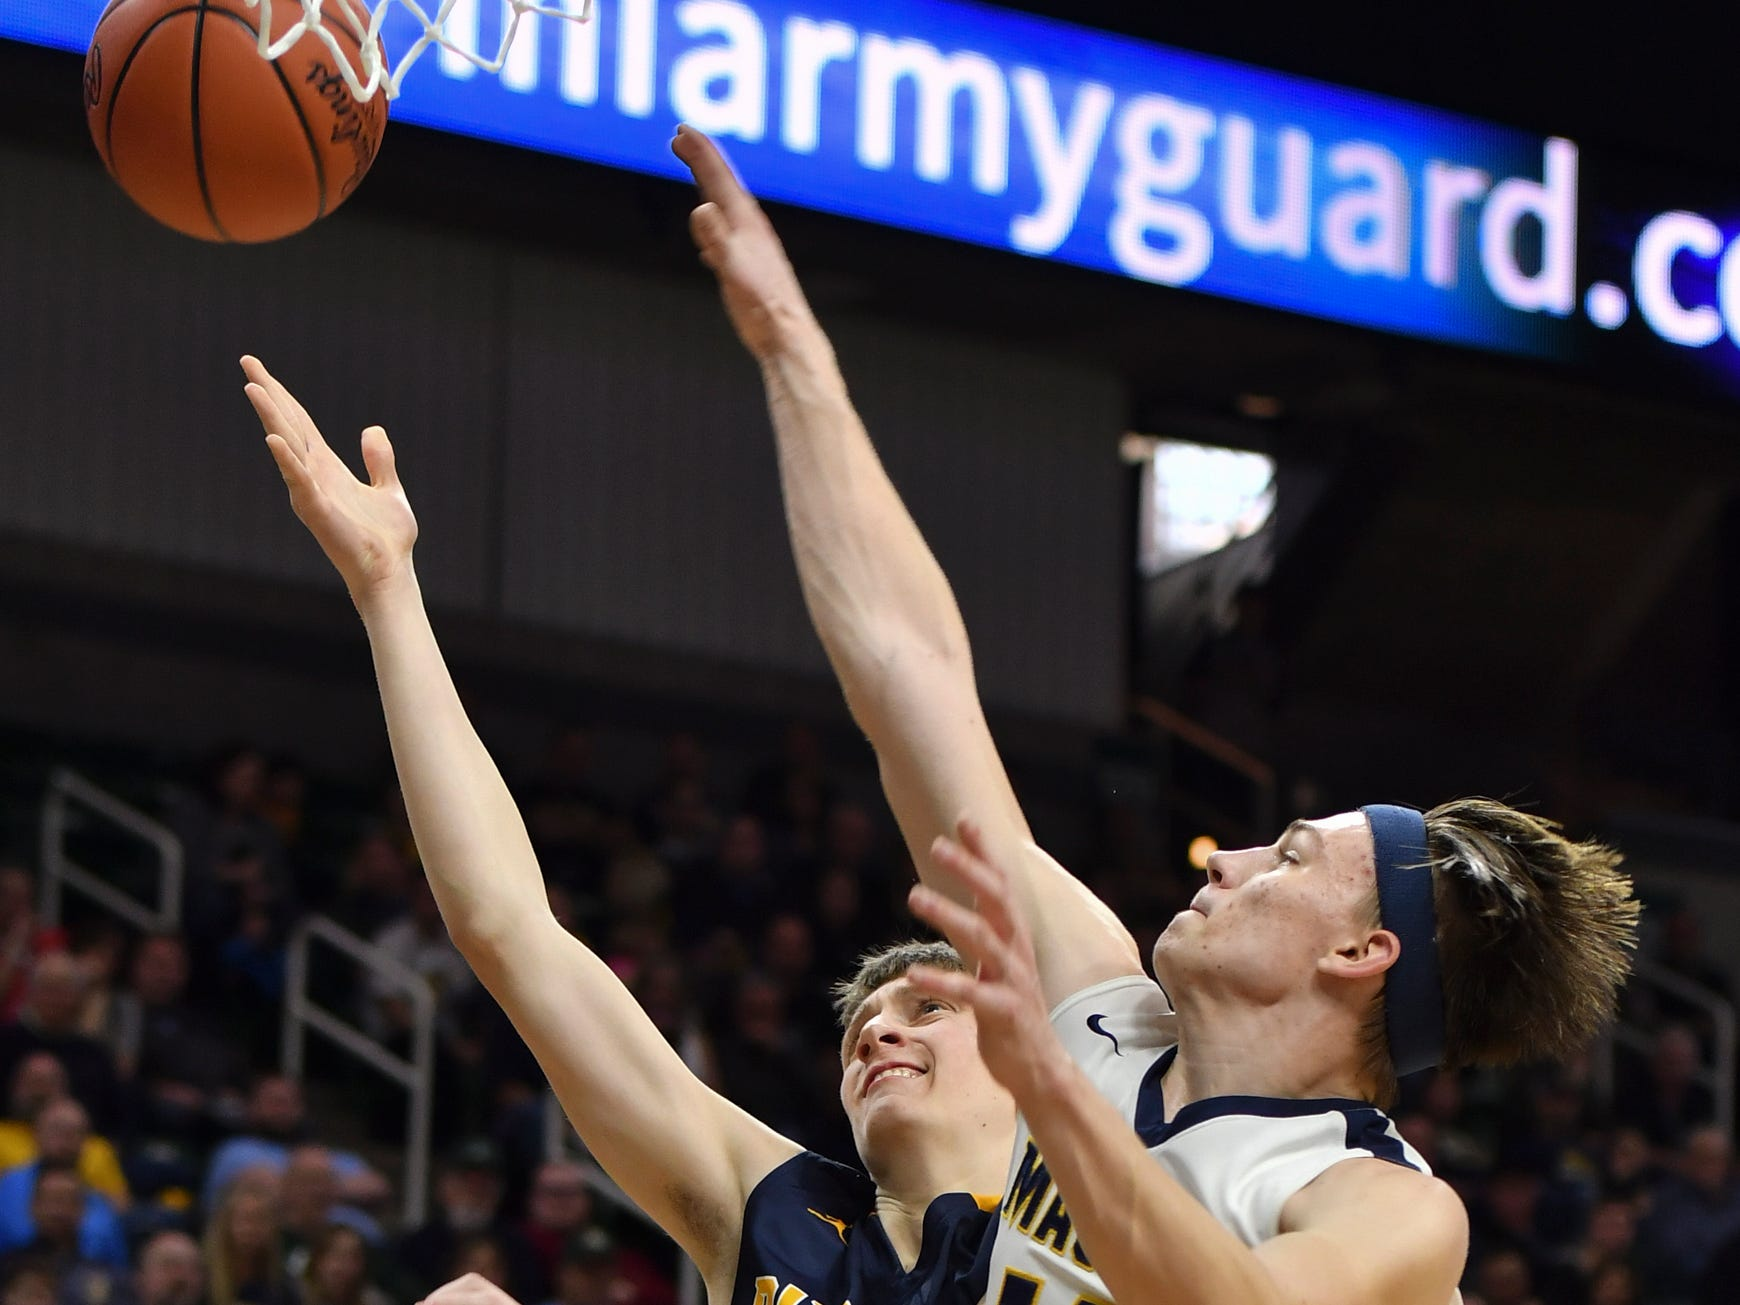 Keegan Smith of P-W drops in two against Erie-Mason's Bryan Sweeney, Thursday, March 14, 2019, during the MHSAA Div. 3 state semifinal at the Breslin Center in East Lansing.   P-W earned a berth in the state final winning 60-45.